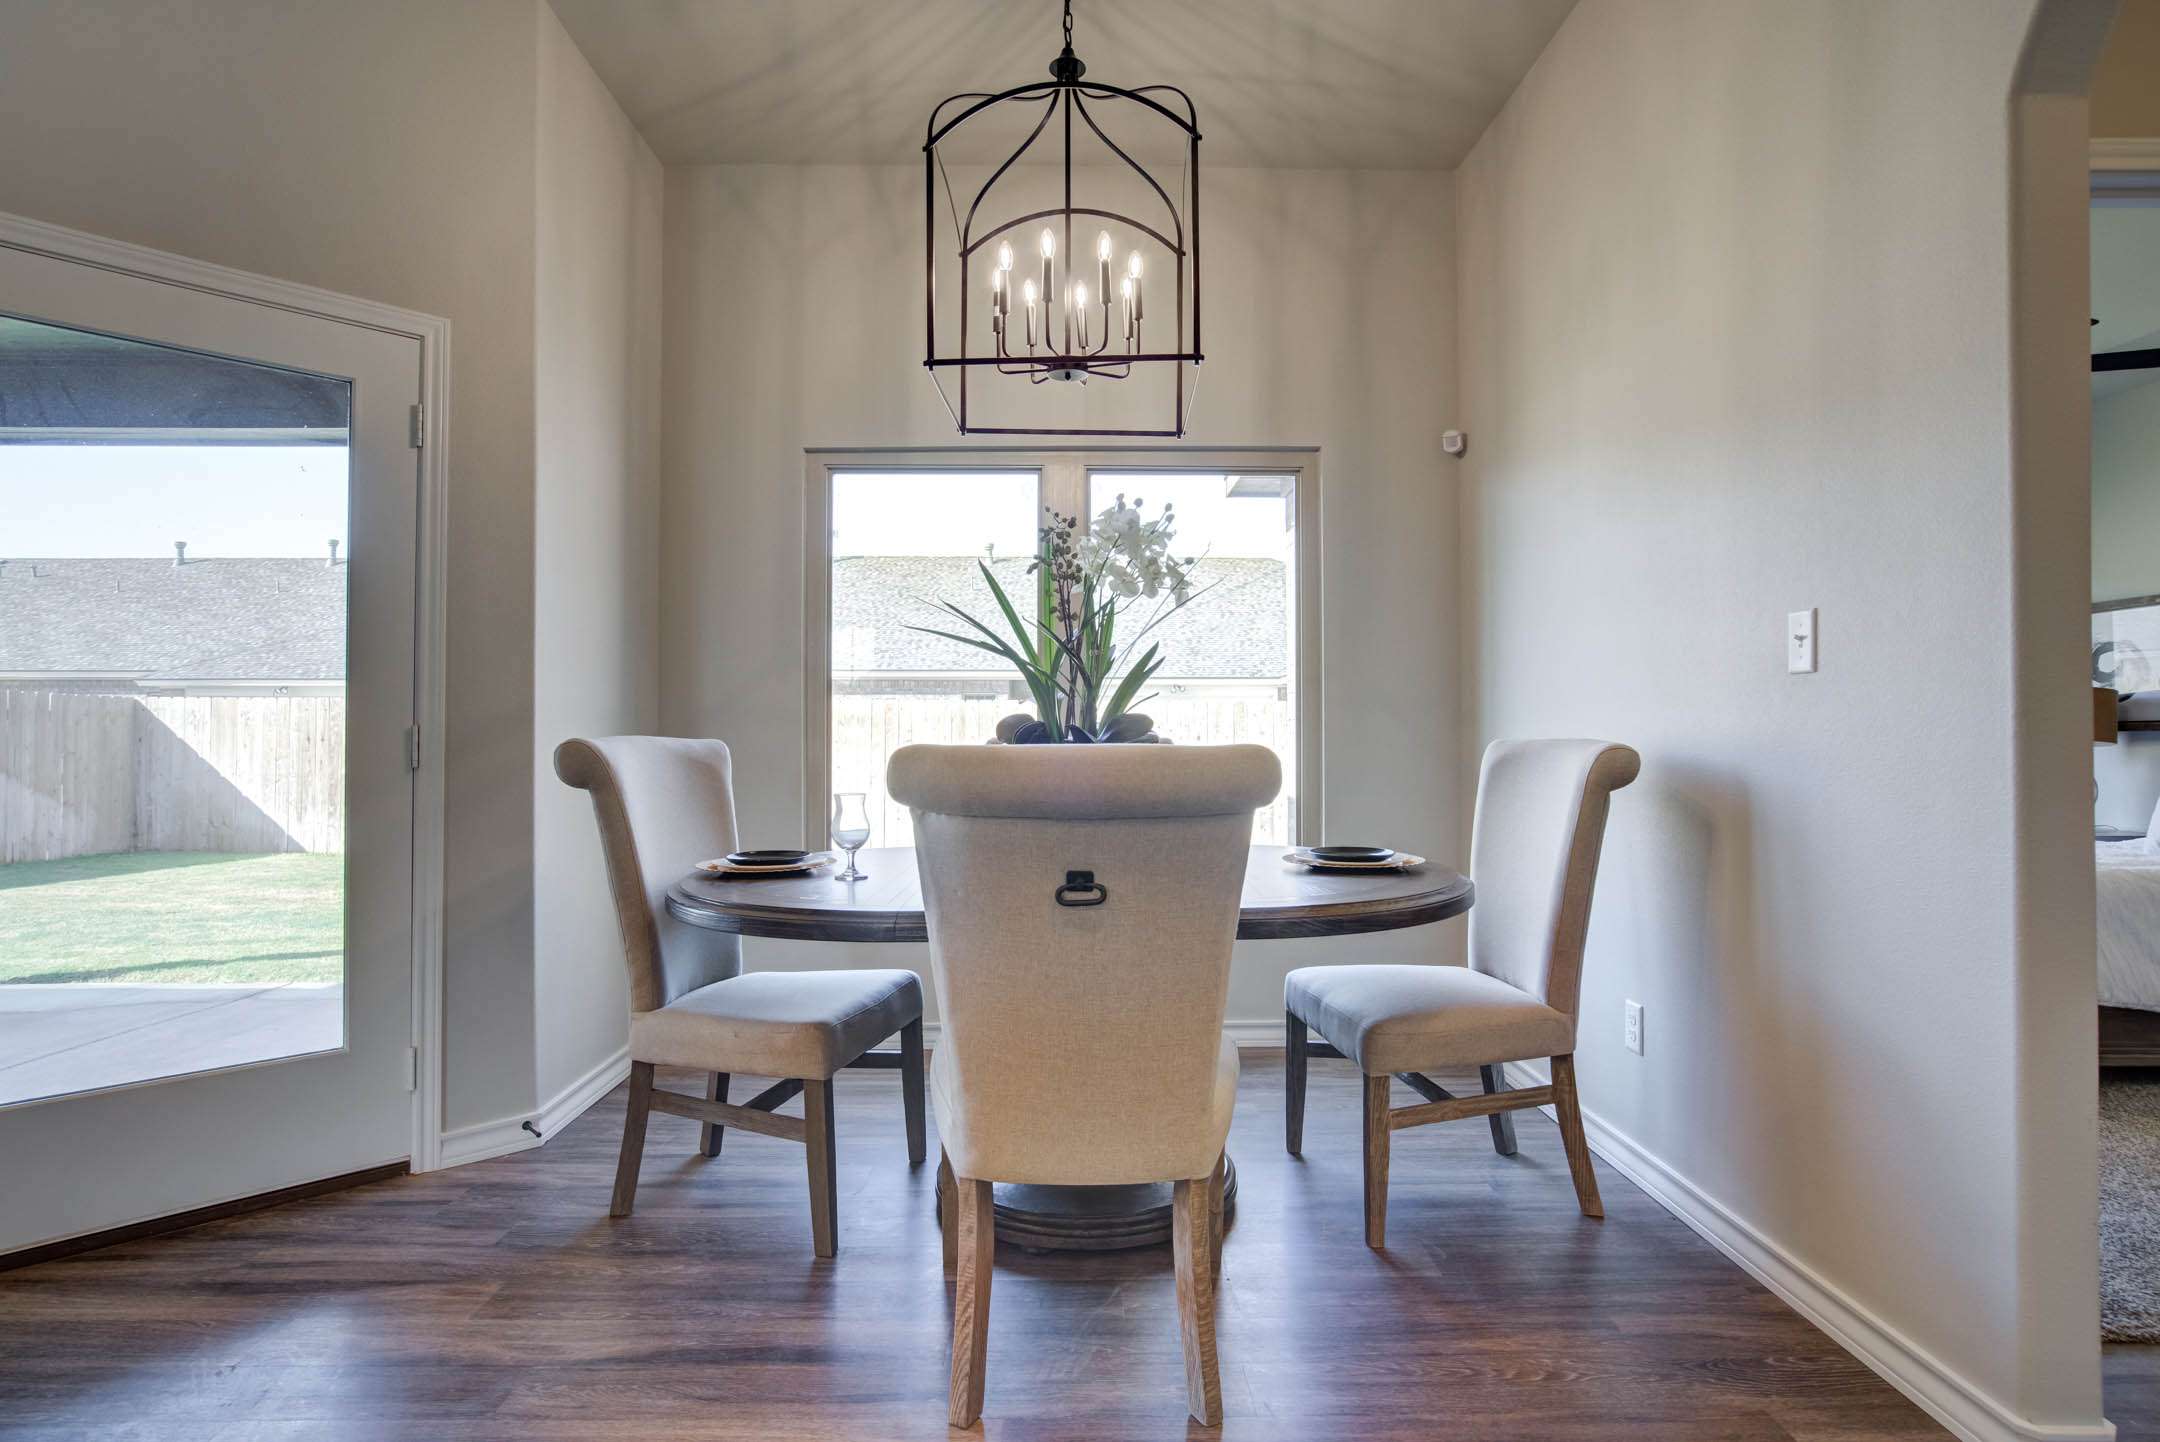 Spacious dining area in new home for sale in Lubbock.